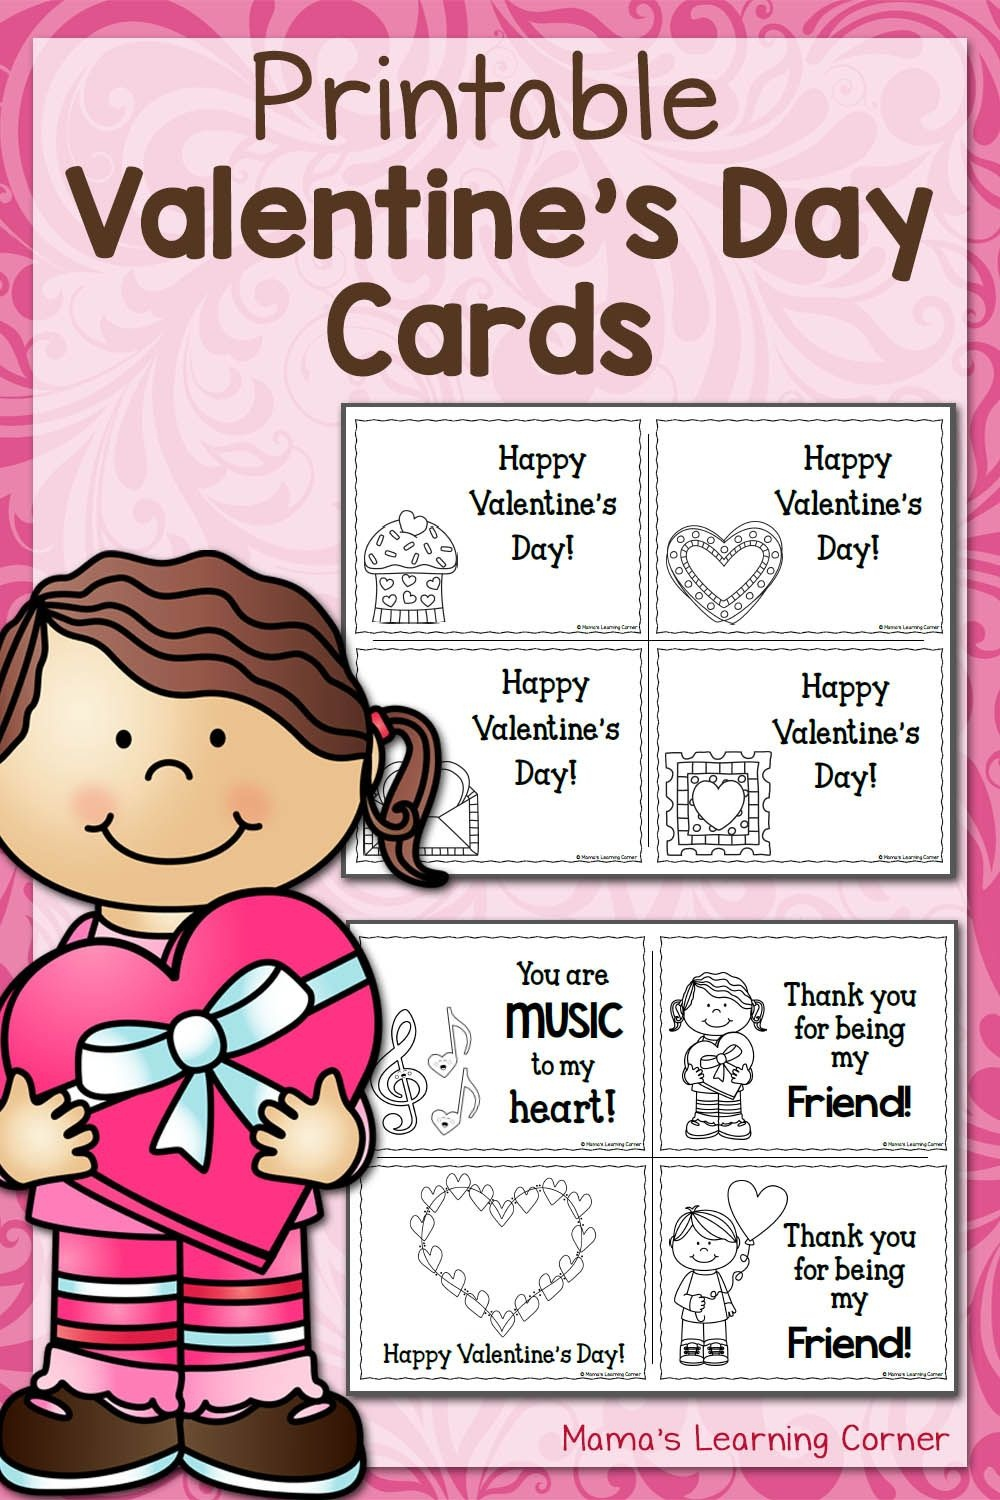 Printable Valentine's Day Cards | Best Of Mama's Learning Corner - Free Printable Valentines Day Cards For Kids